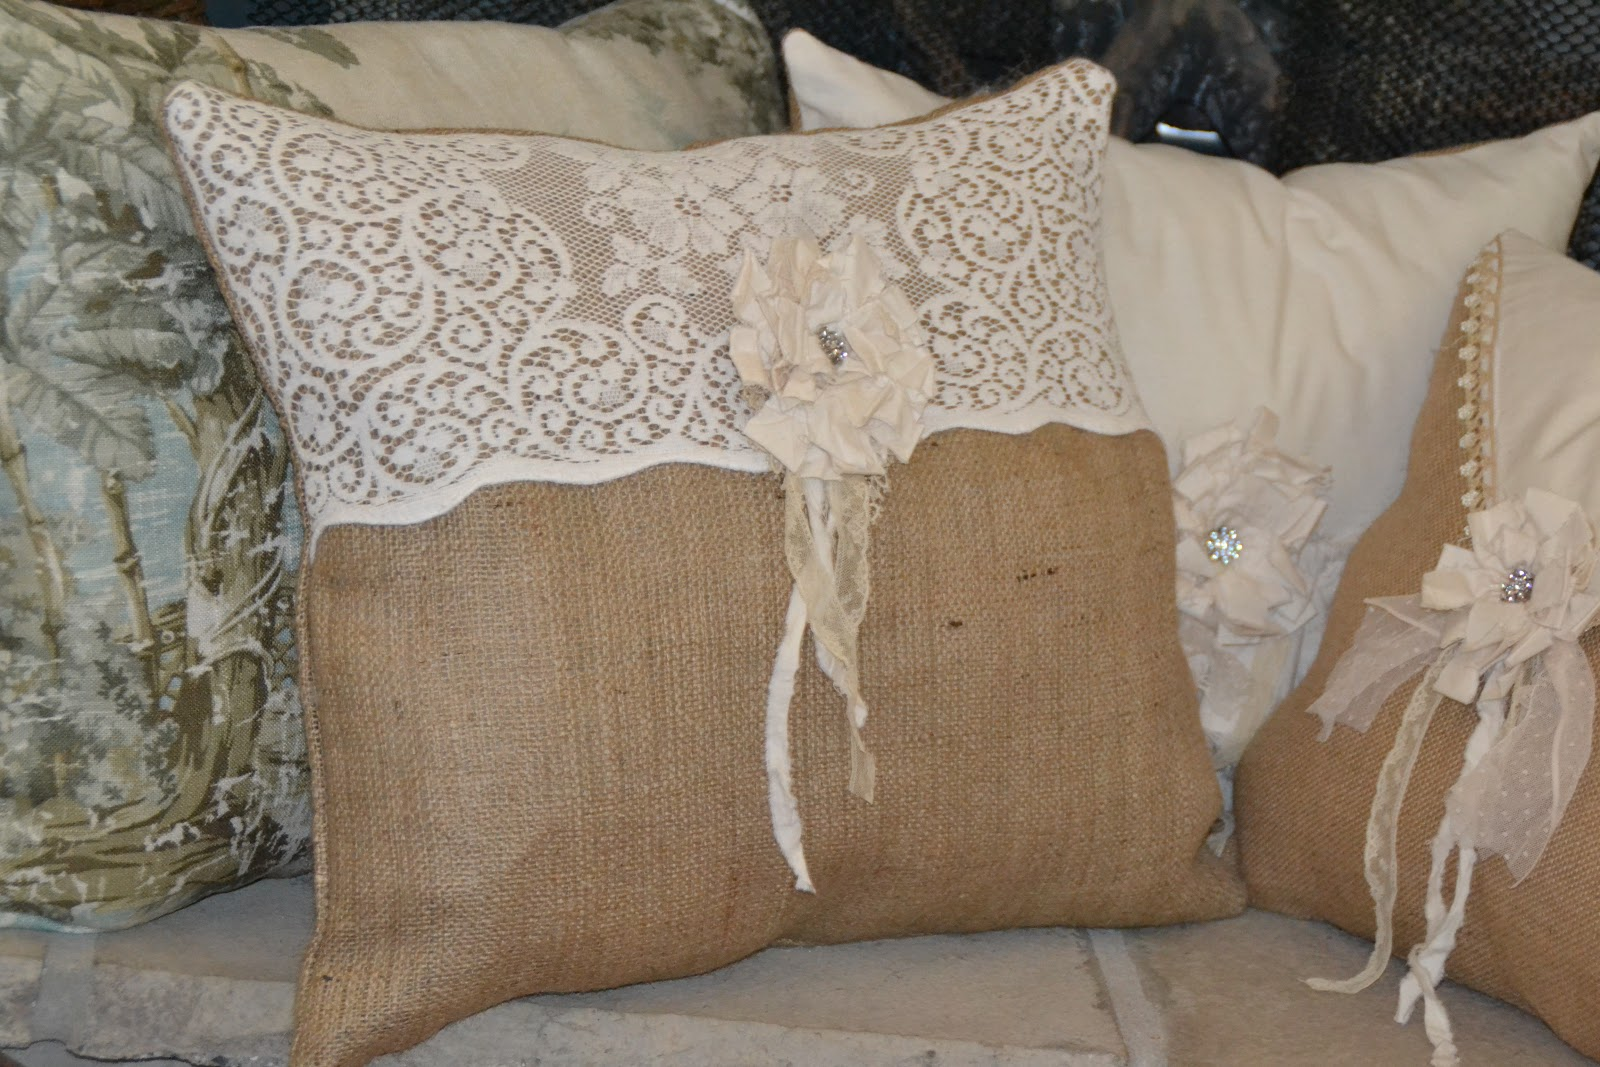 Fancy Sofa Pillows Bed Small Room 28 Images Decorative Circle